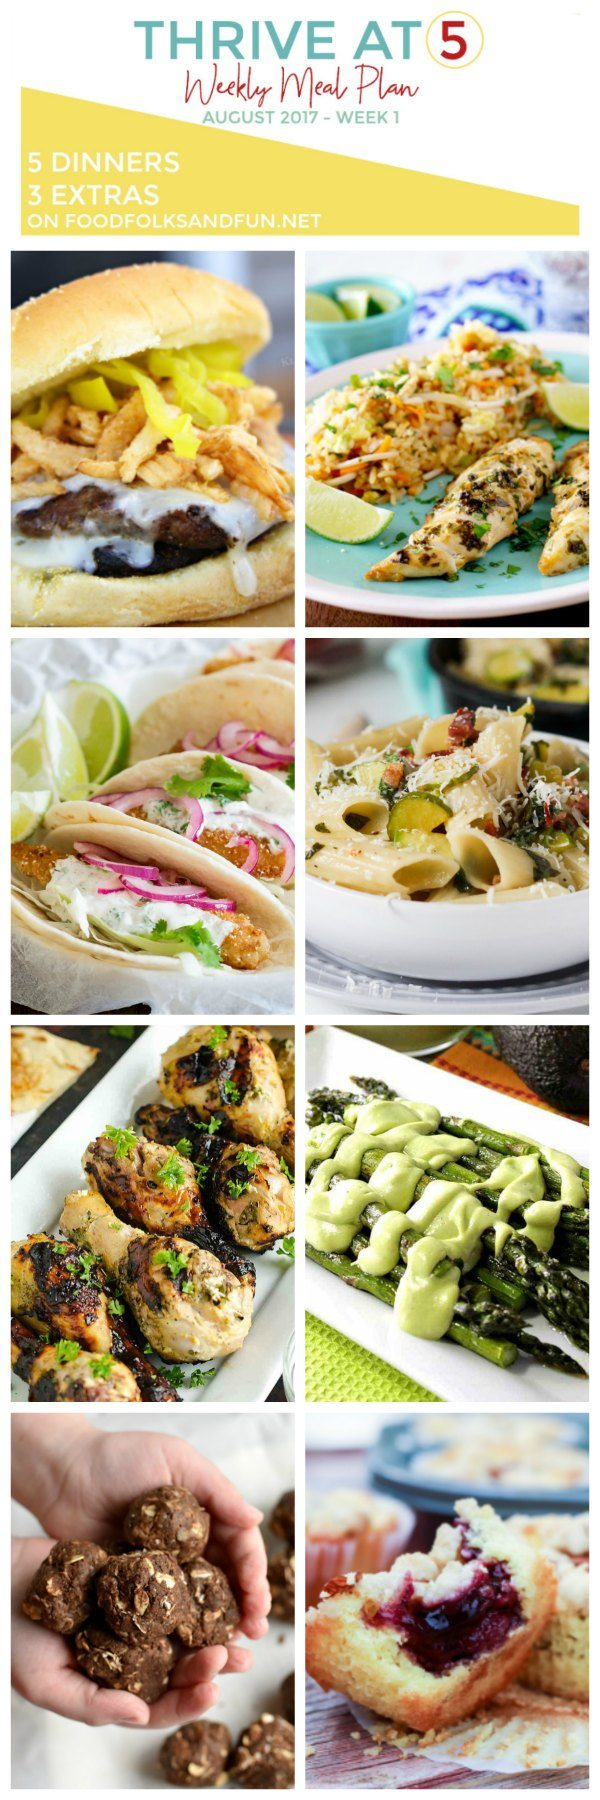 Meal Plan for the month of August.